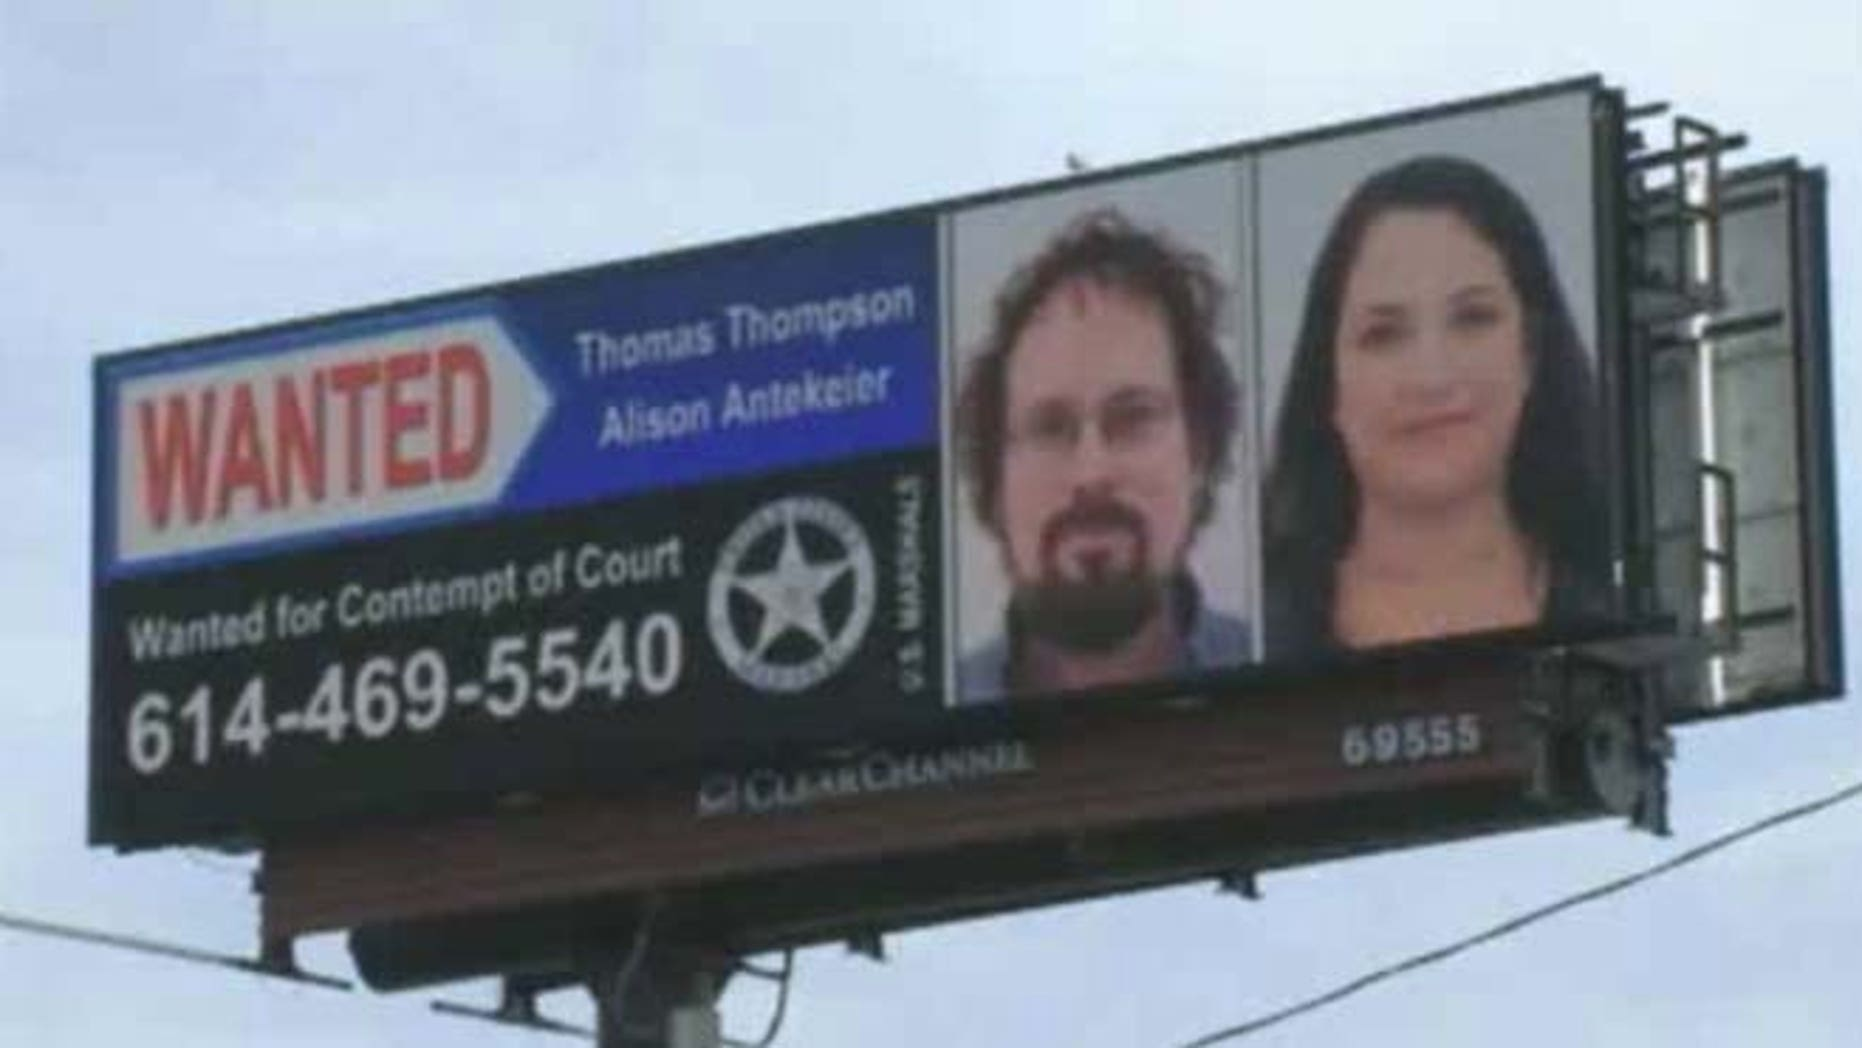 Jan. 27: This image shows the wanted billboard for fugitives Tommy Thompson and Alison Antekeier. The U.S. Marshals Service captured former fugitive Tommy Thompson at a Hilton hotel in West Boca Raton. Thompson had been on the lam for two years, accused of cheating investors out of their share of $50 million in gold bars and coins he had recovered from the 19th century shipwreck S.S. Central America.